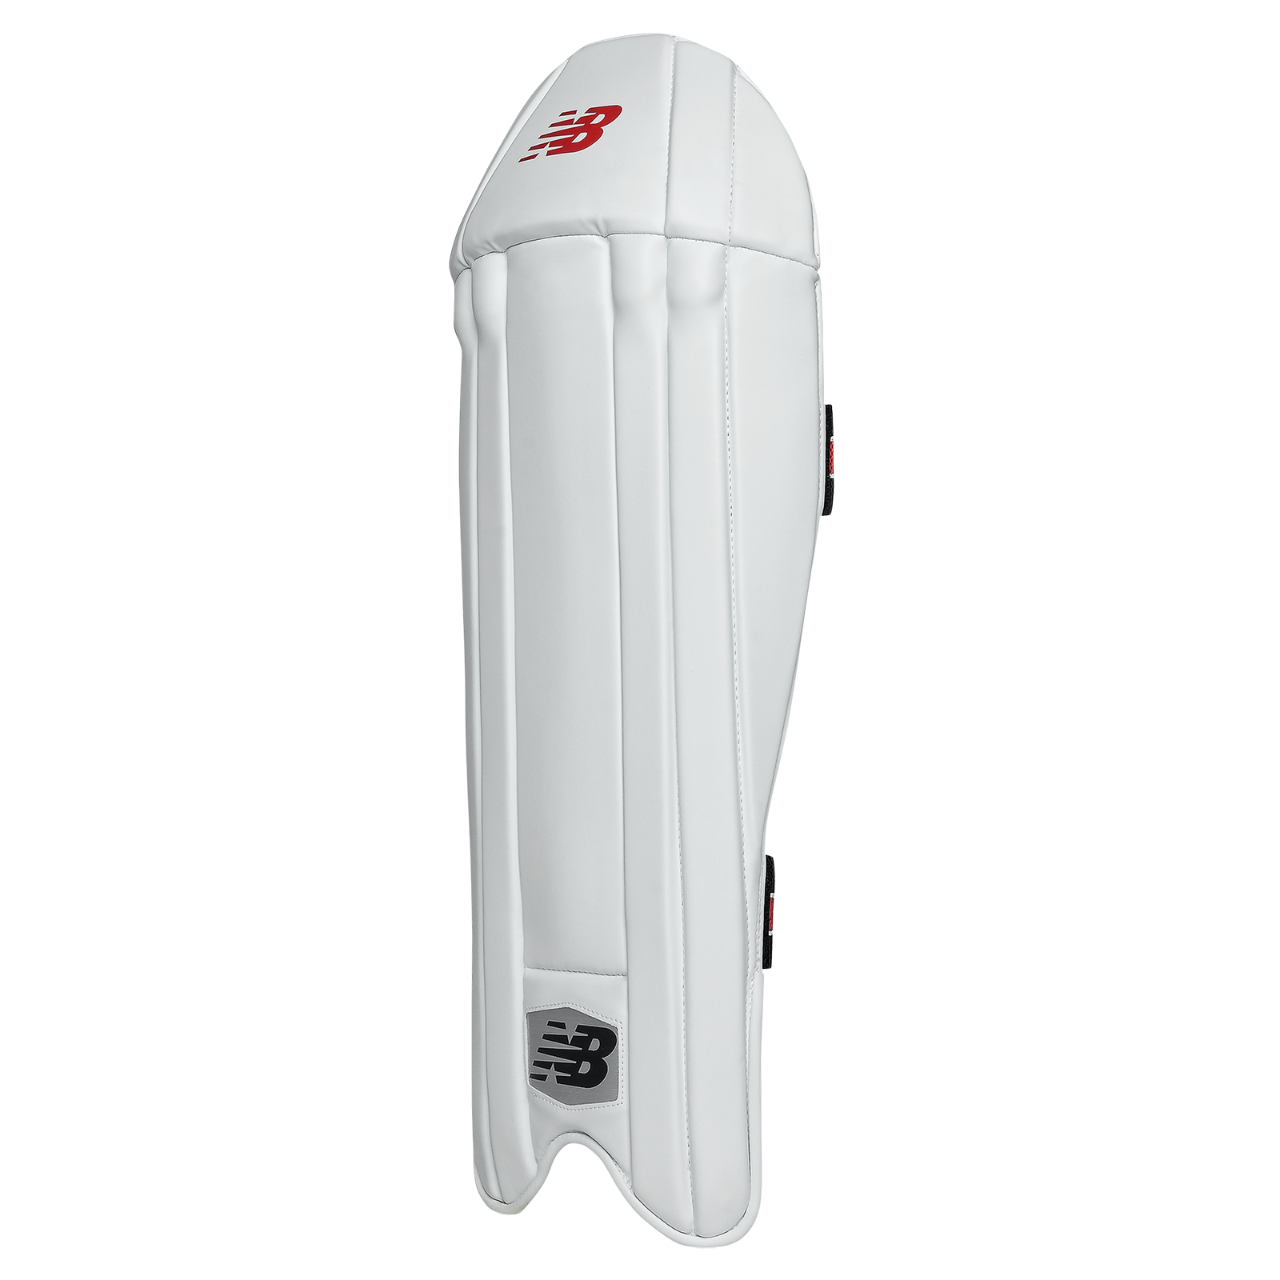 2020 New Balance TC 860 Wicket Keeping Pads